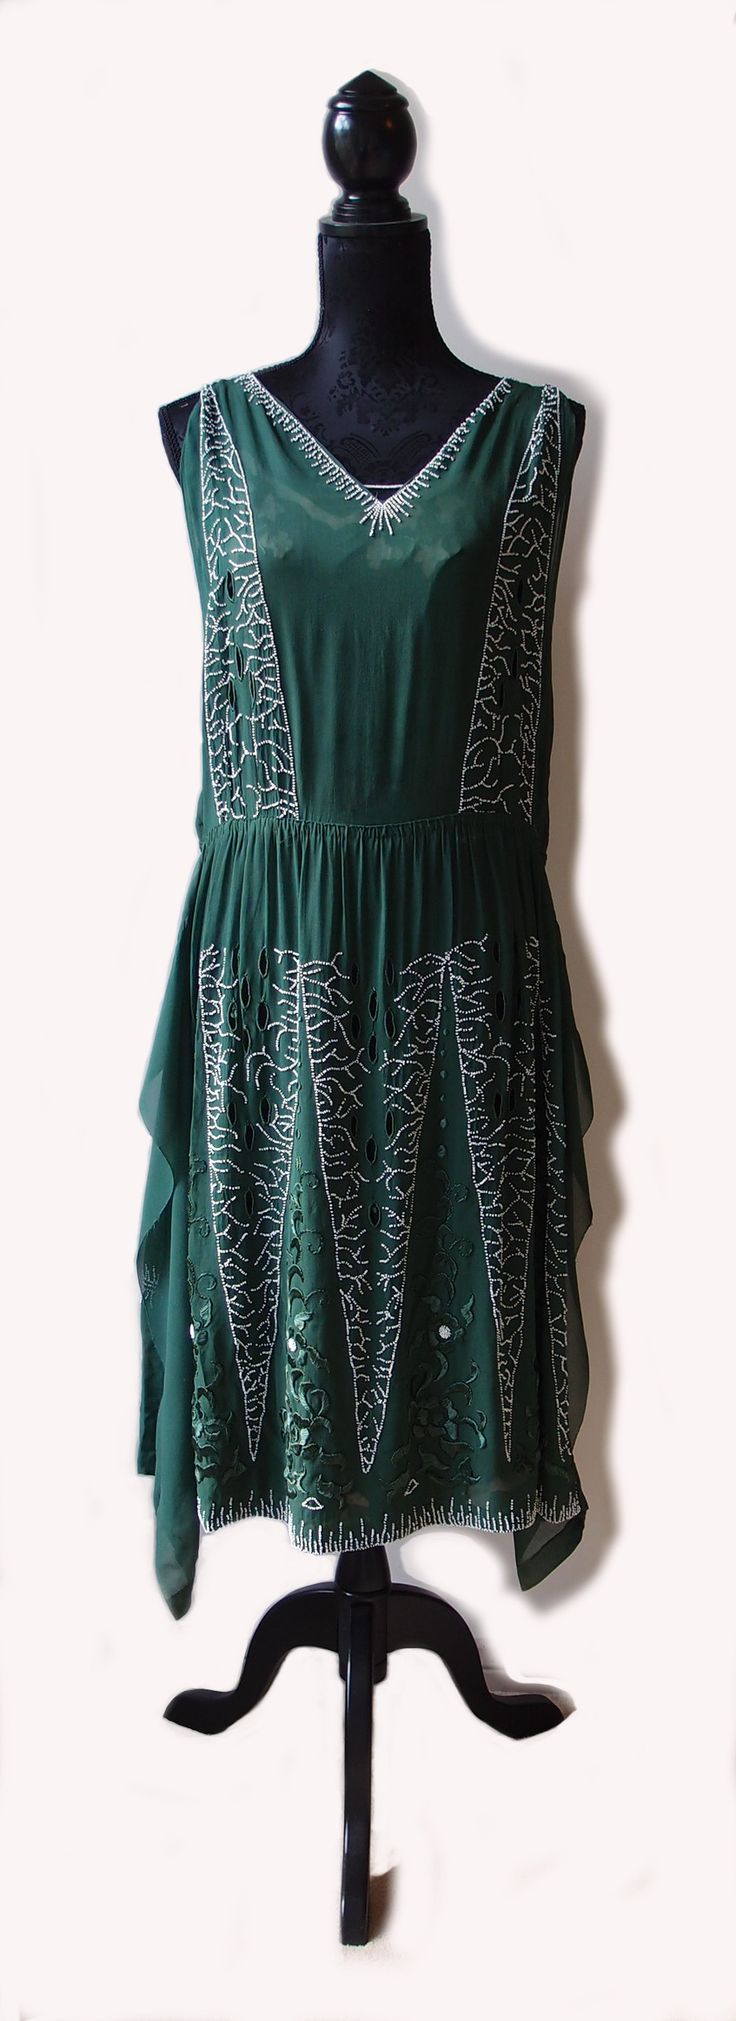 Early 1920s green dress by Jeannetton of New York. Handkerchief hem, floral embroidery and white beading. Dress has been altered/shortened by gathering at the natural waist.